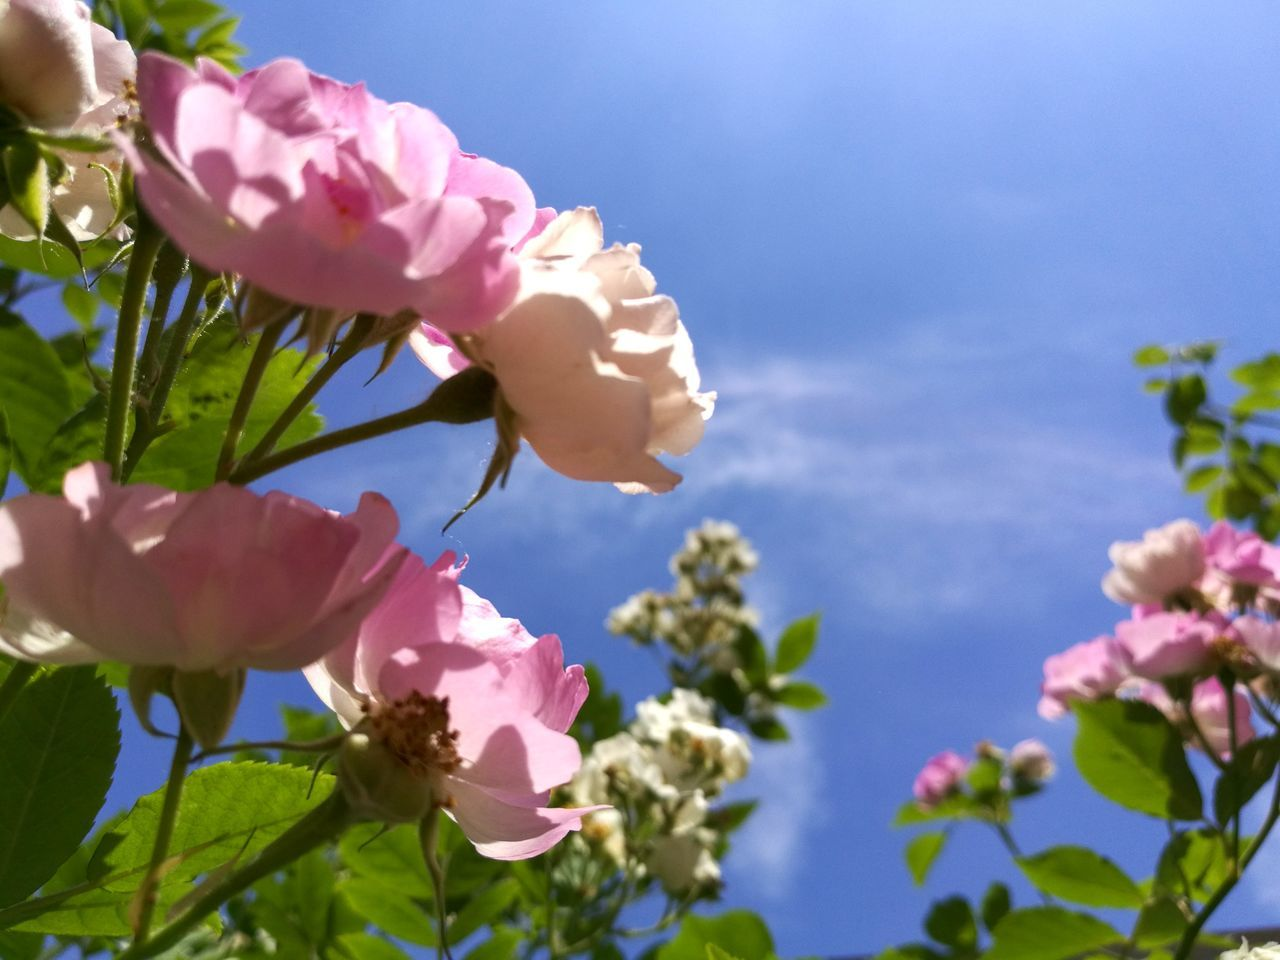 Close-Up Of Pink Bougainvillea Blooming On Tree Against Sky